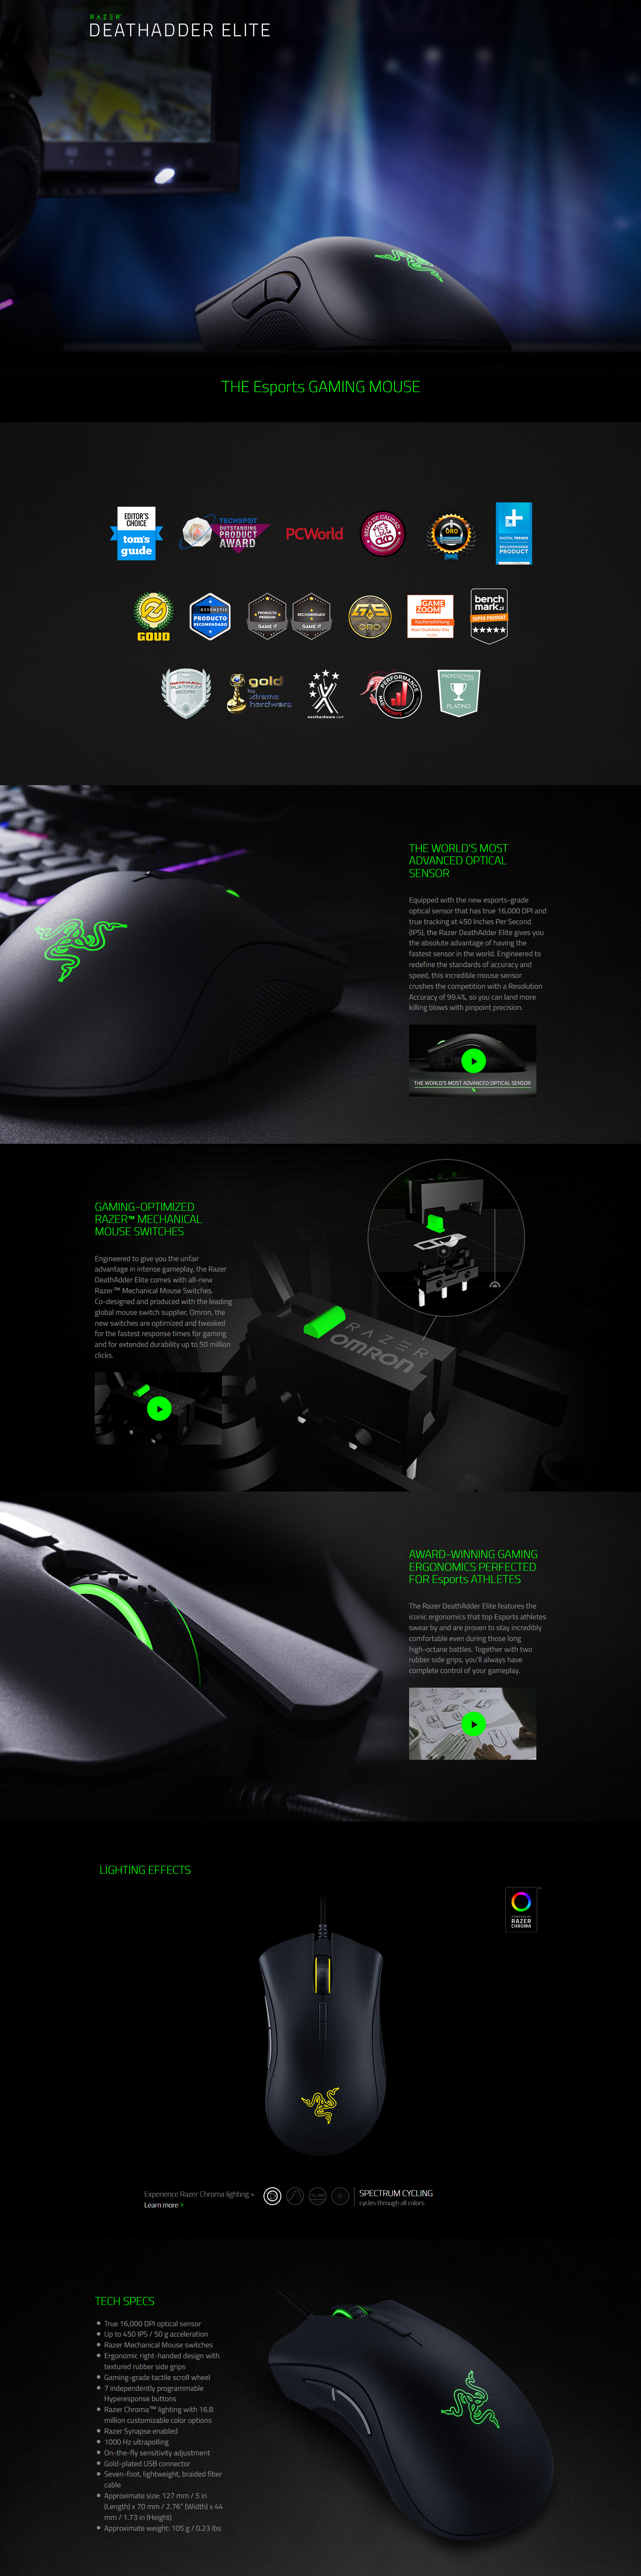 2017 04 10 22 53 22 Razer DeathAdder Elite Review